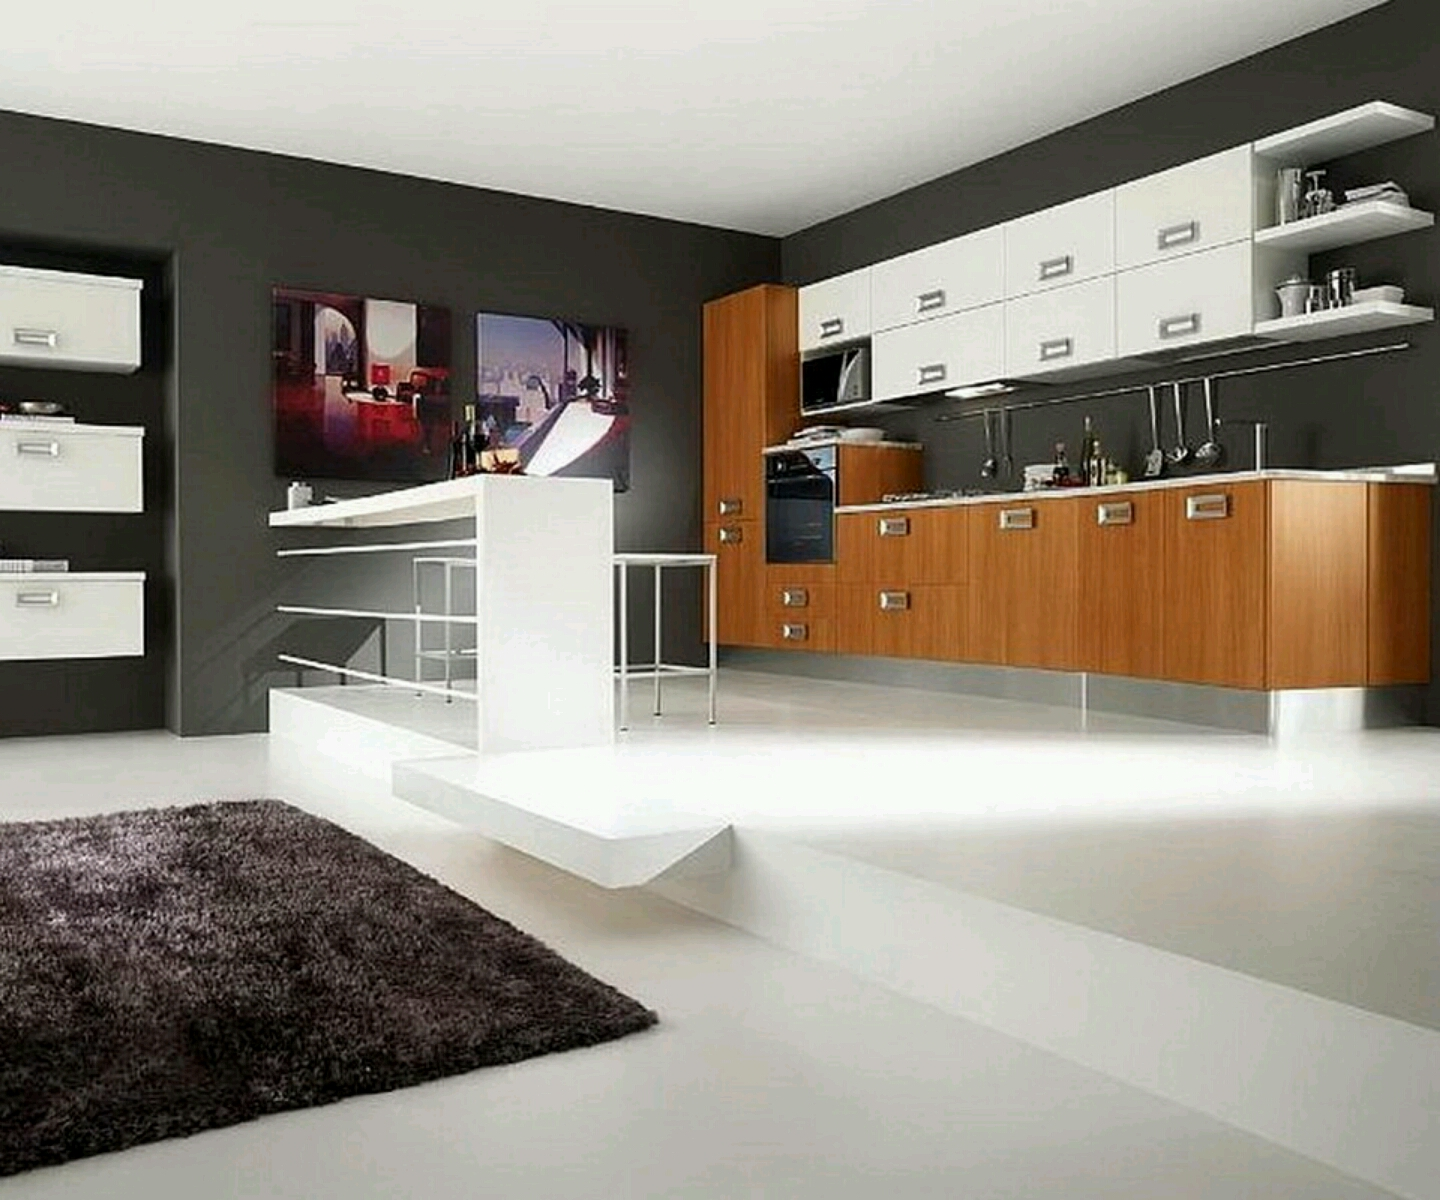 Ultra modern kitchen designs ideas - Images of modern kitchen designs ...